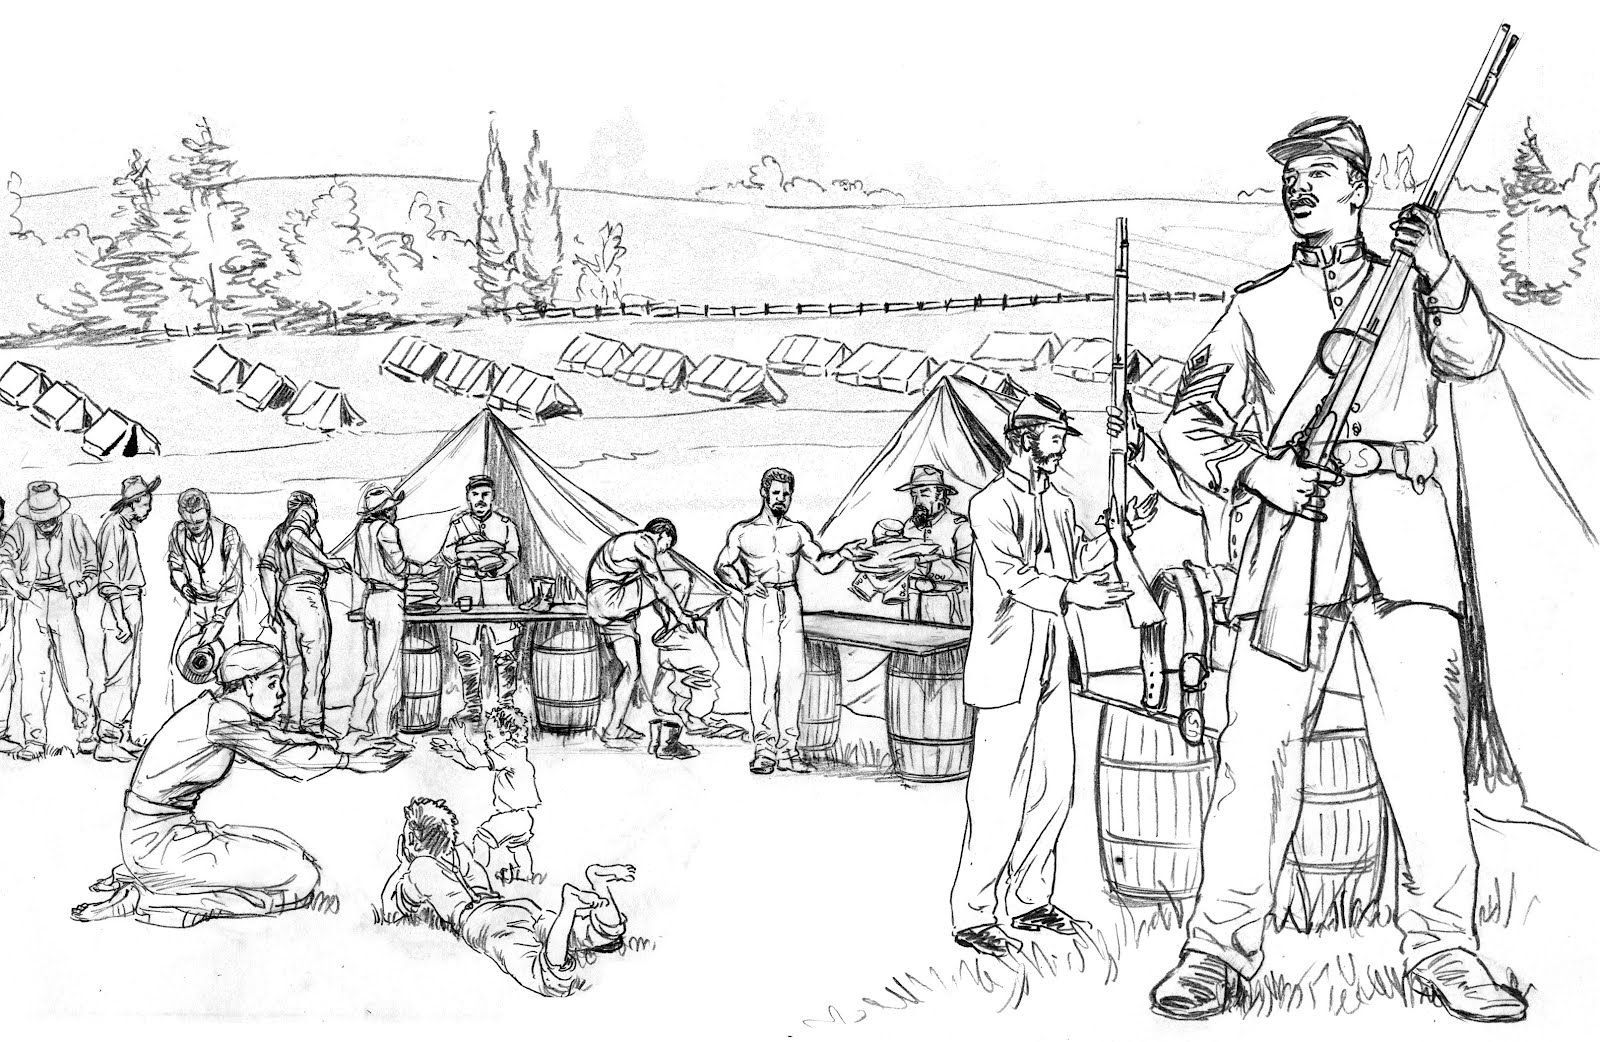 Revolutionary War Coloring Pages (15 Pictures) - Colorine.net ...